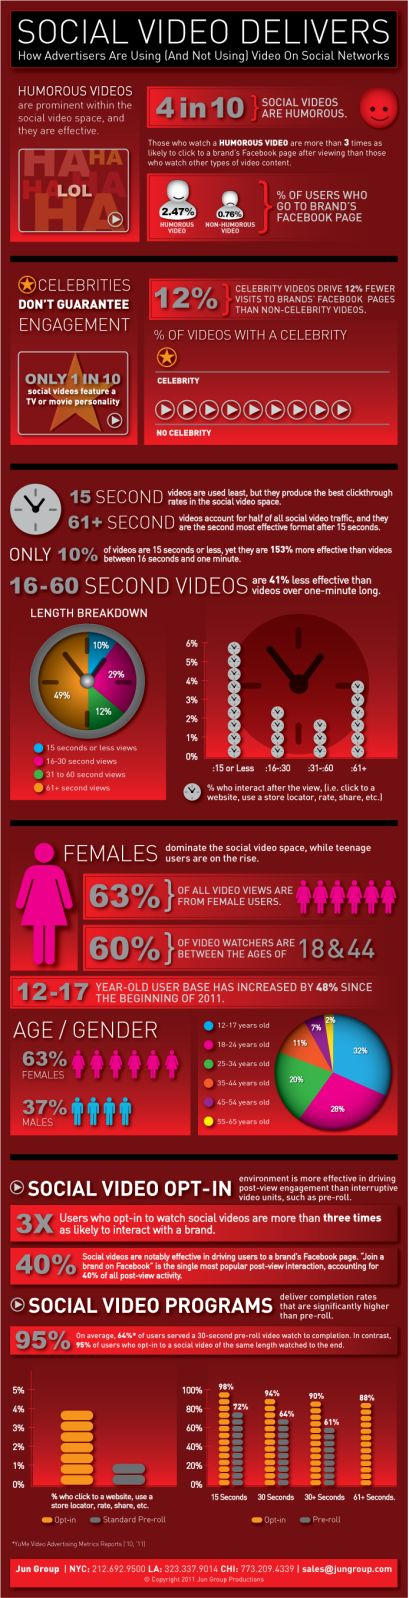 Social Video Delivers [Infographic]